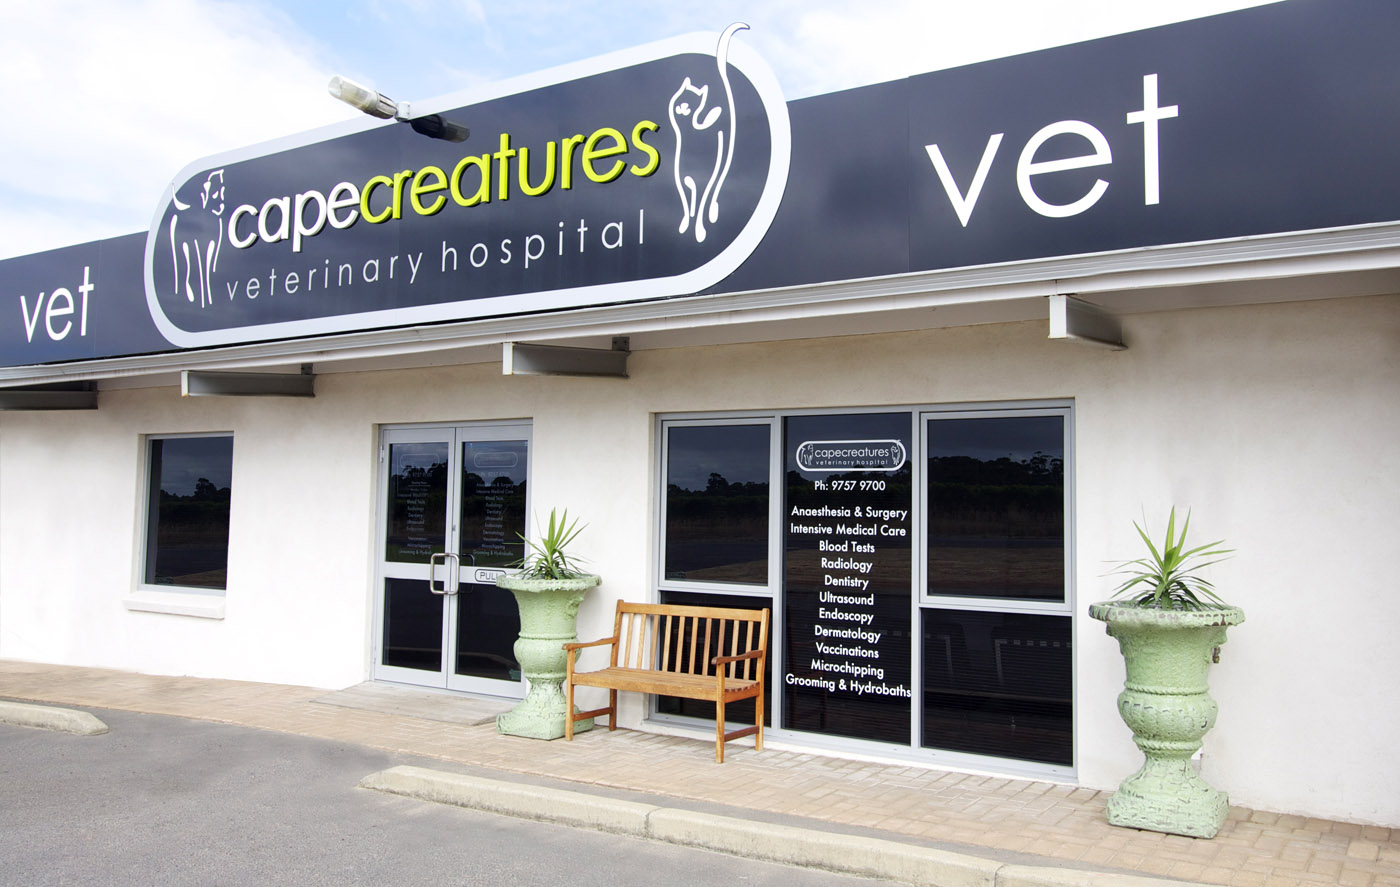 Entrance - Cape Creatures Vet